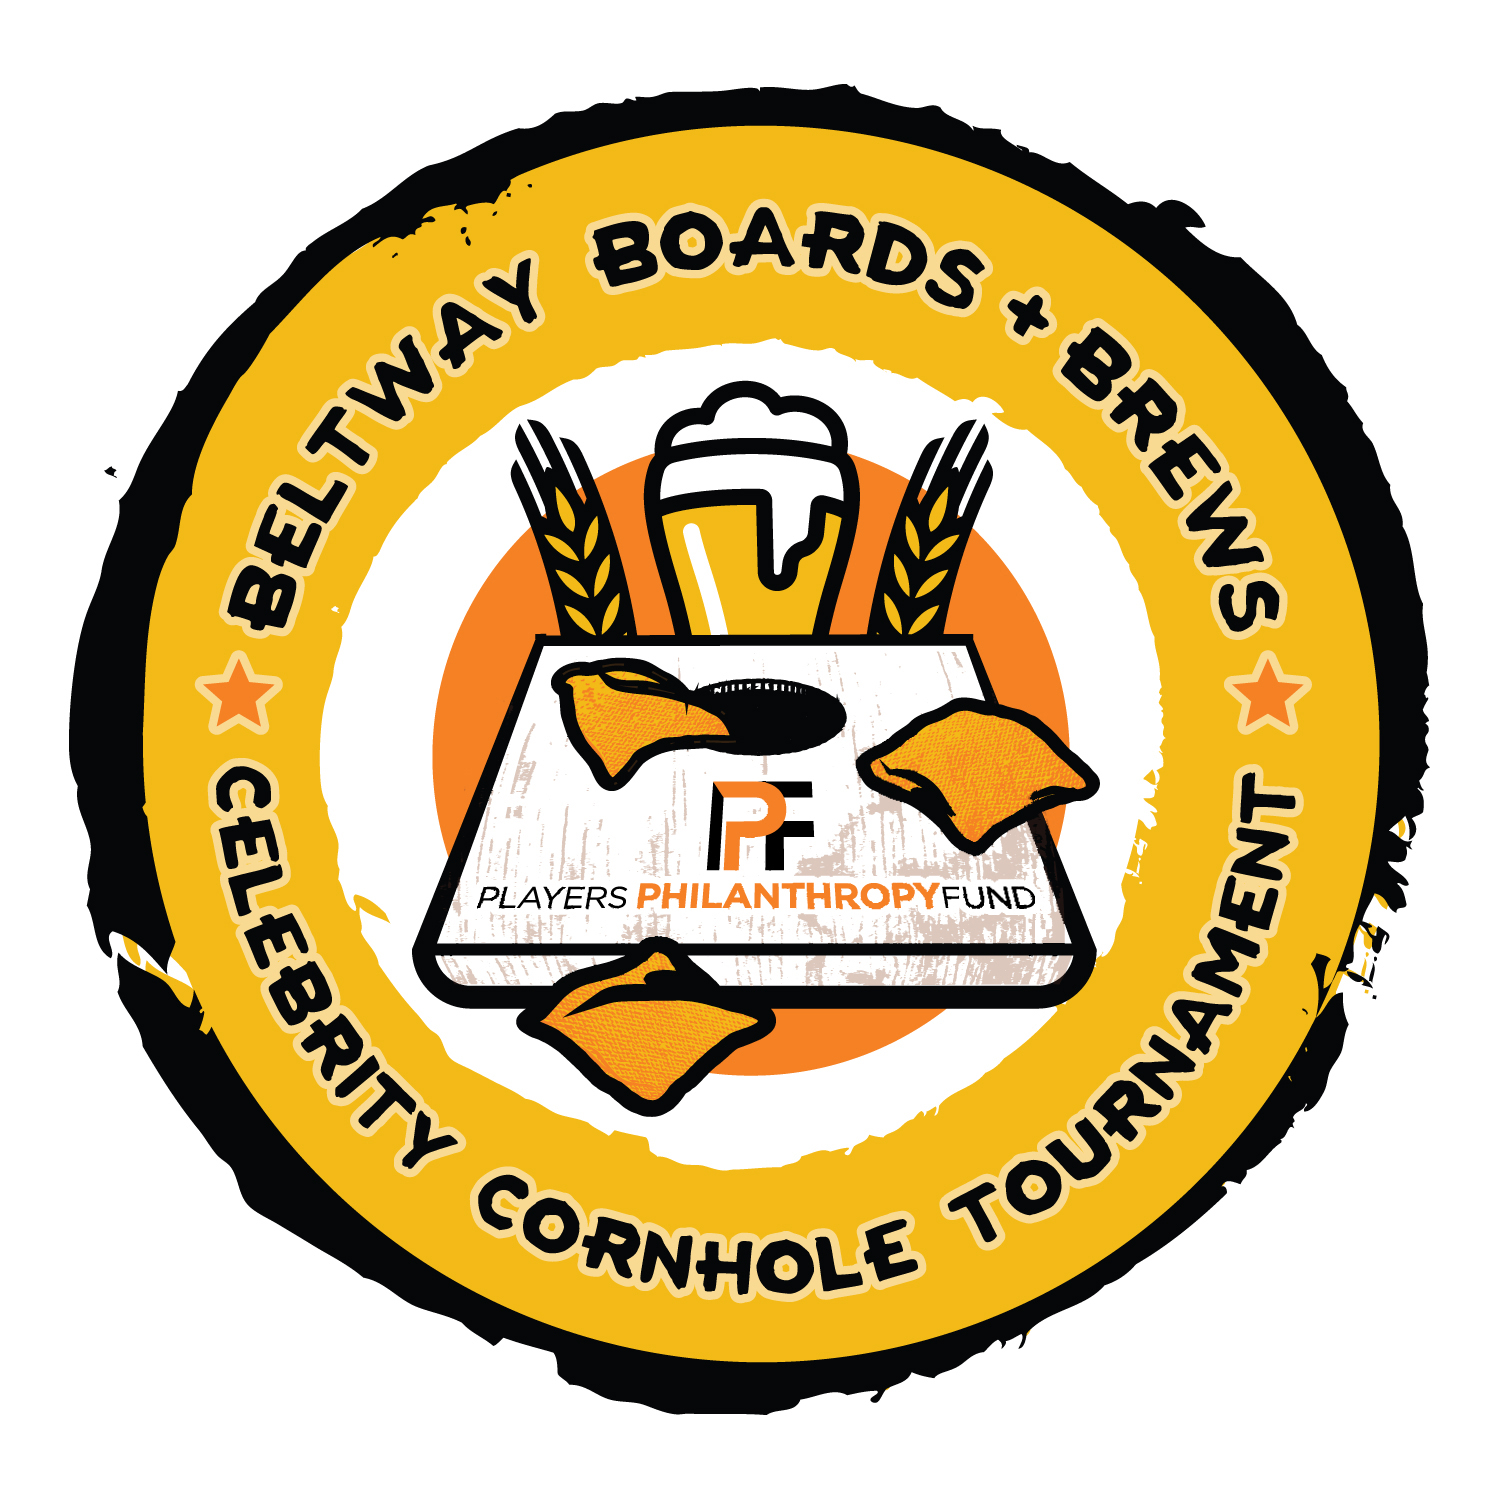 Several Baltimore Ravens Commit to Attending Players Philanthropy Fund Fall Fundraiser - Inaugural Event Beltway Boards + Brews Celebrity Cornhole Tournament Will Bring Together Players and Fans for CharityTOWSON, MD (Sep. 21, 2017) - Baltimore Ravens players will be out in full force for the Players Philanthropy Fund's (PPF) fall fundraising event Beltway Boards + Brews Celebrity Cornhole Tournament. The Ravens organization, current and past players and staff members will be donating time and funds to the inaugural fundraiser taking place Monday, Oct. 30 at the Baltimore Museum of Industry.